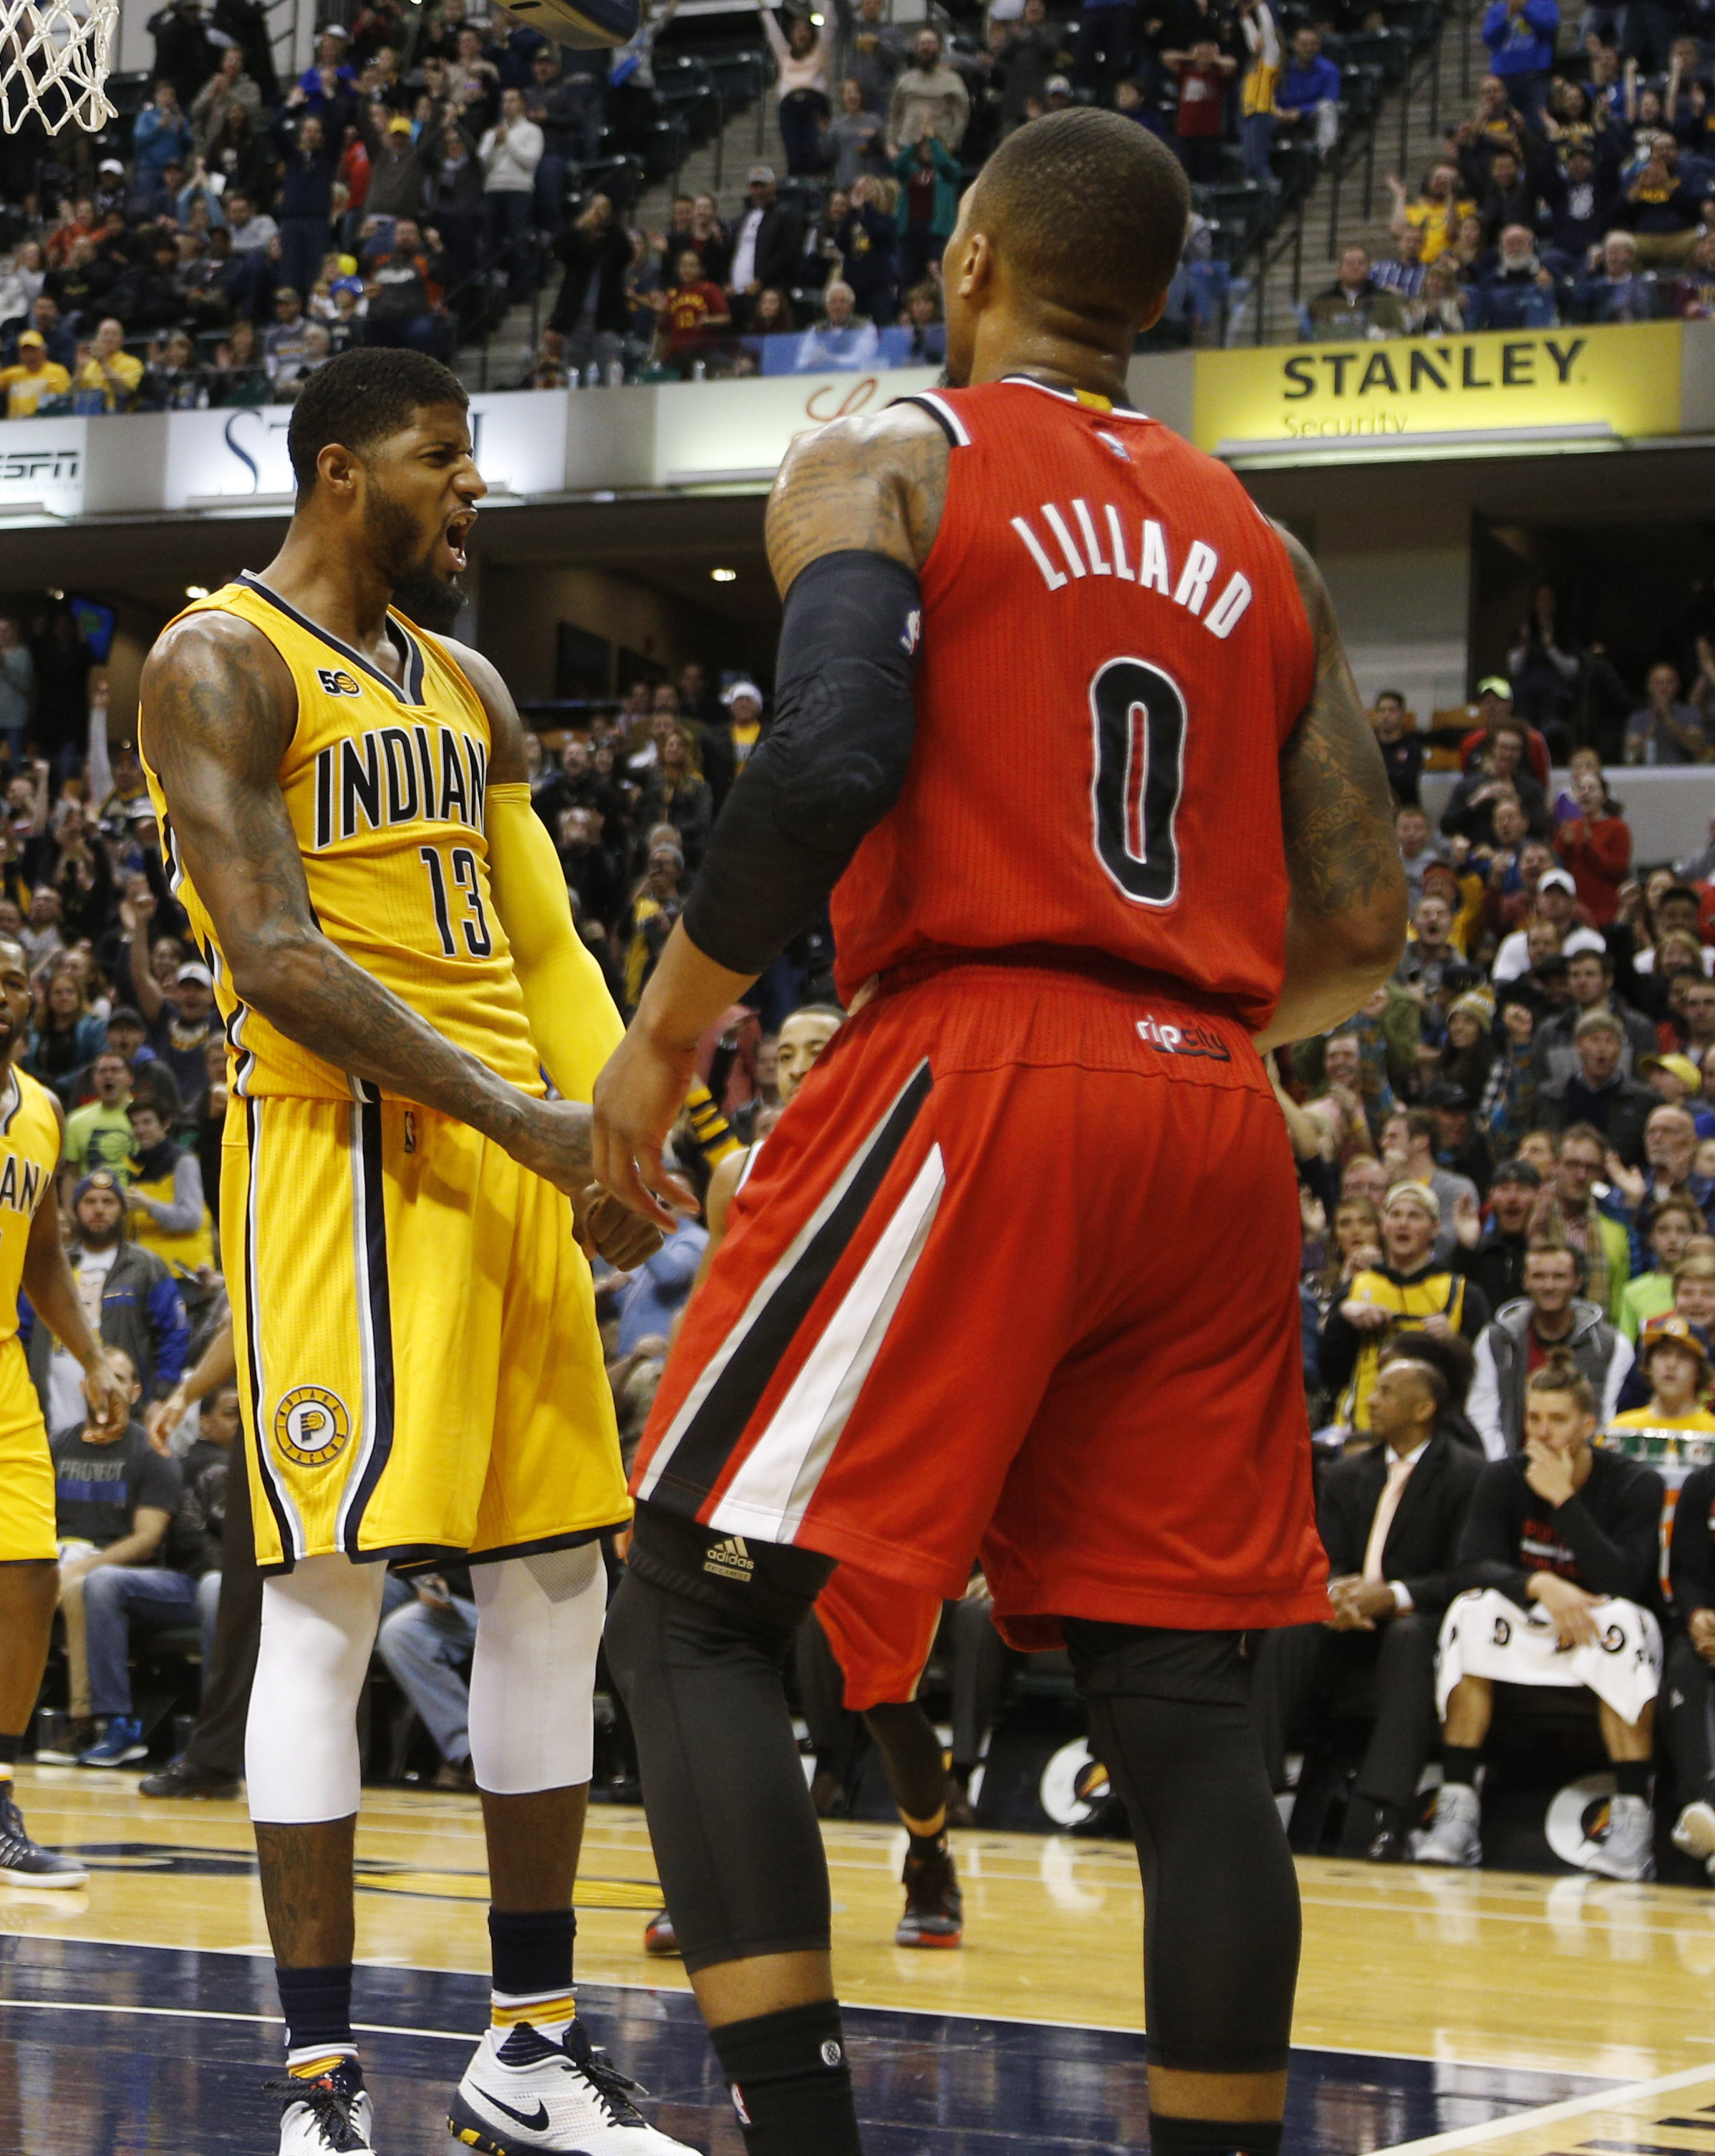 9738628-nba-portland-trail-blazers-at-indiana-pacers